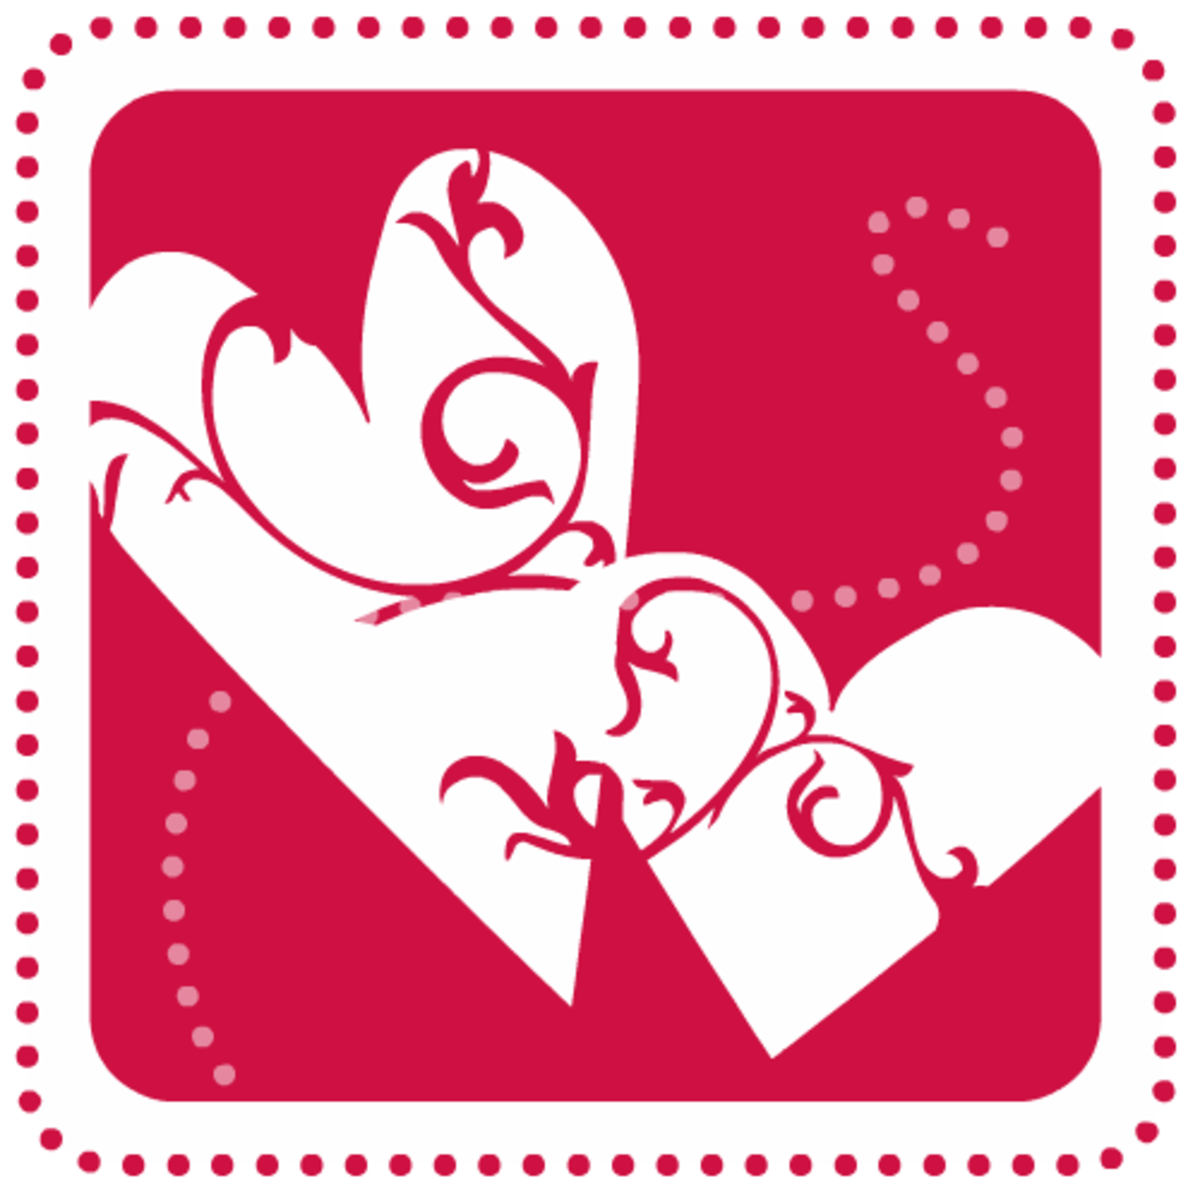 Free Valentine's Day clip art: Two red hearts with swirls and dots